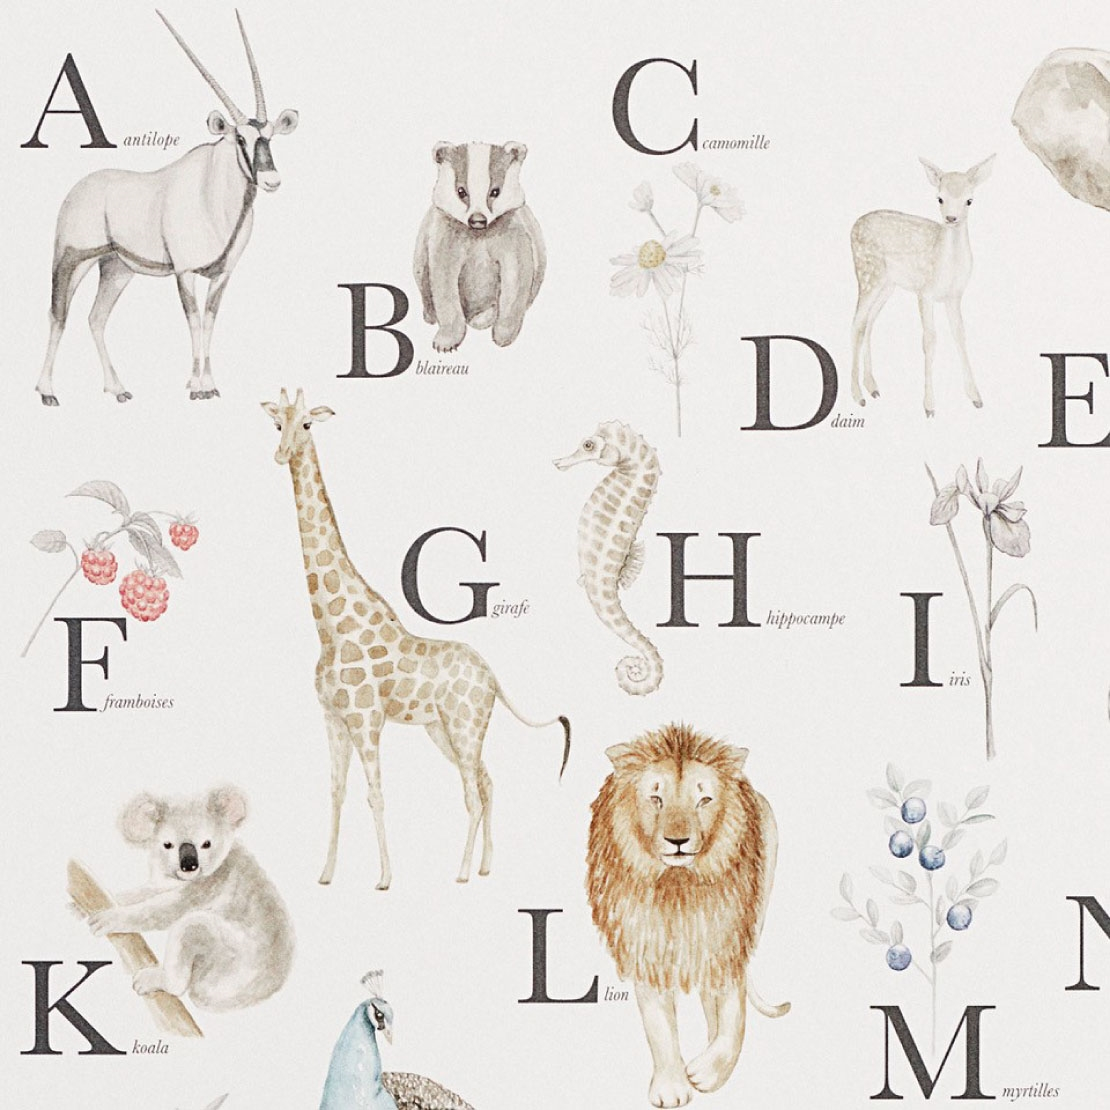 Poster Educatif Abecedaire Camcam Animaux Manipani